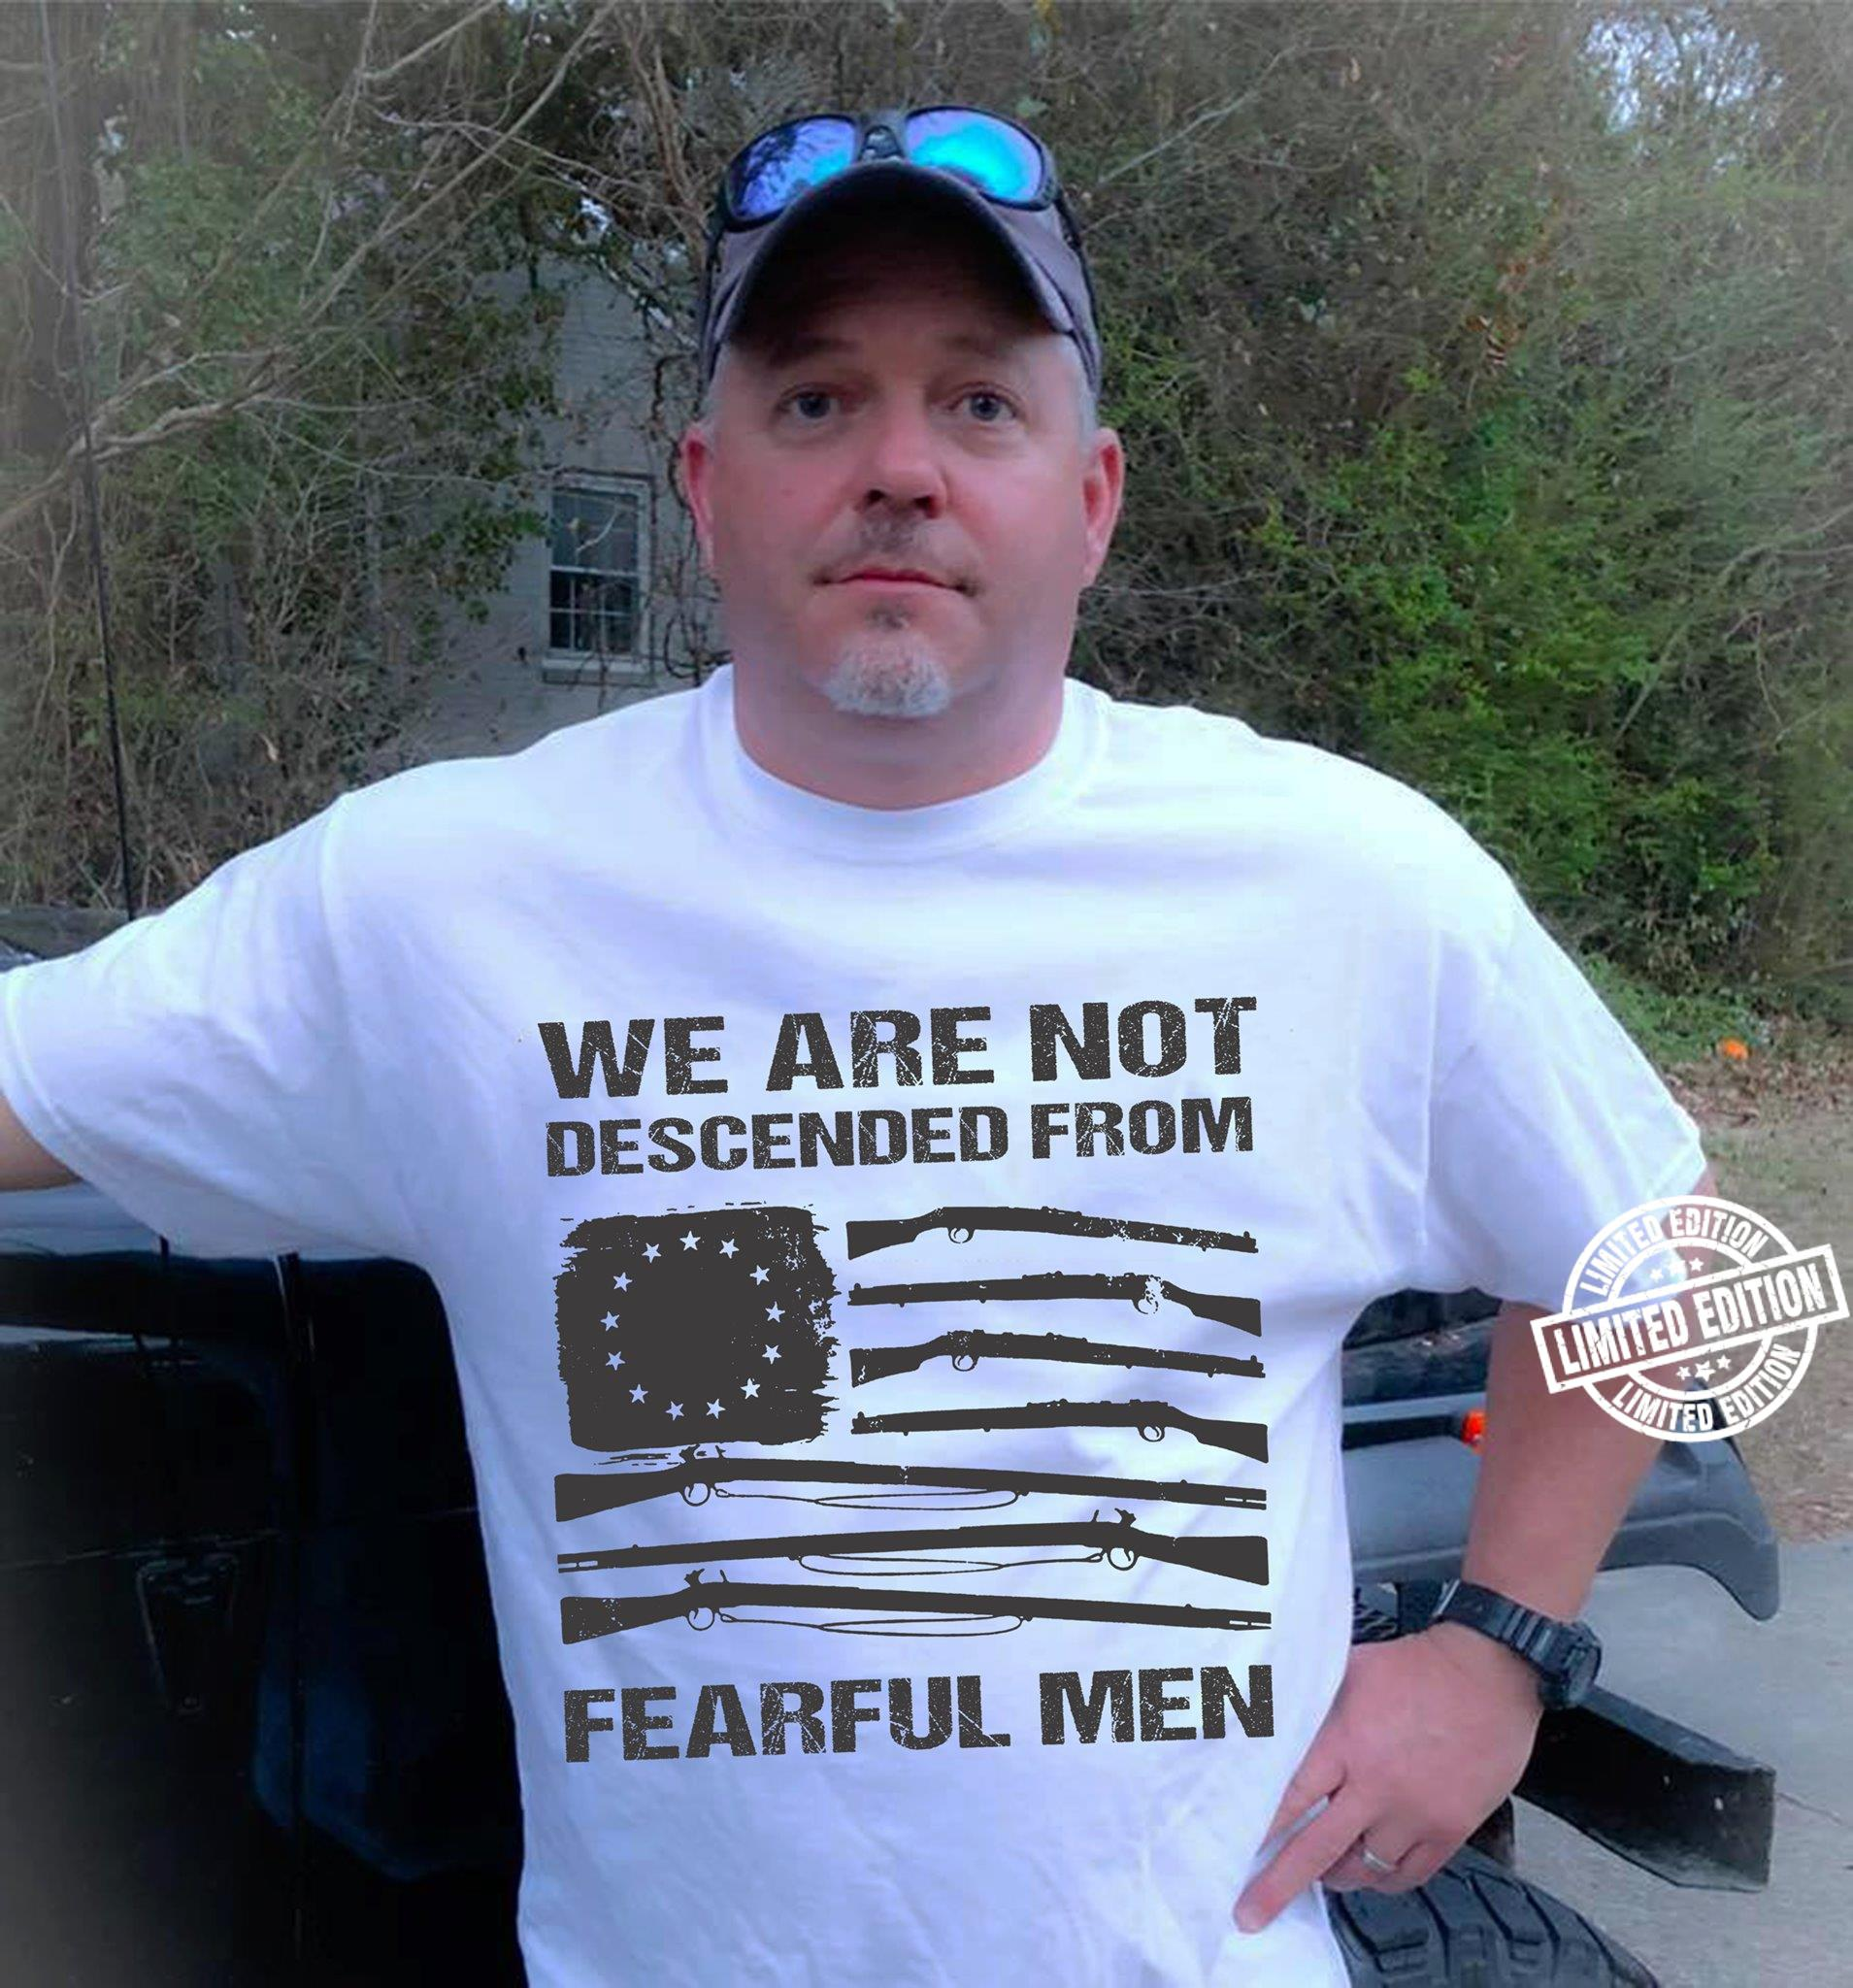 We are not descended from fearful men shirt